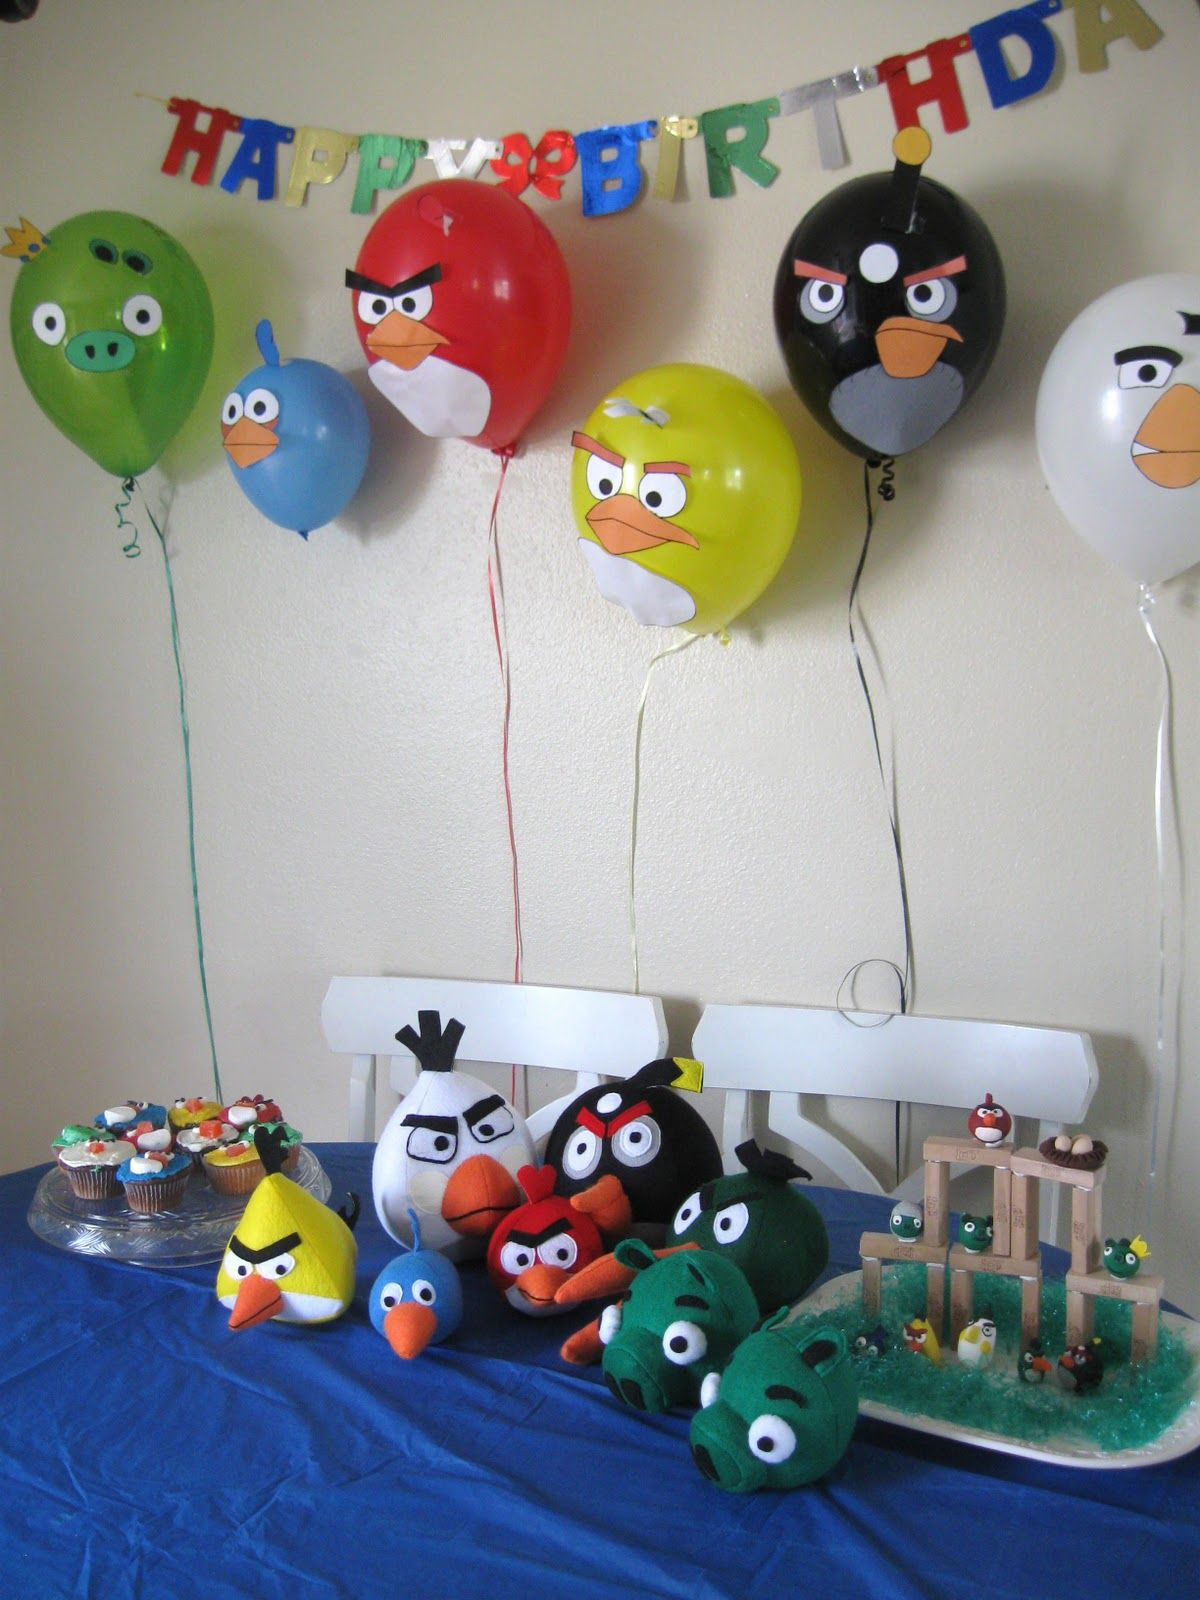 Angry Birds Balloons Jack s next birthday party idea